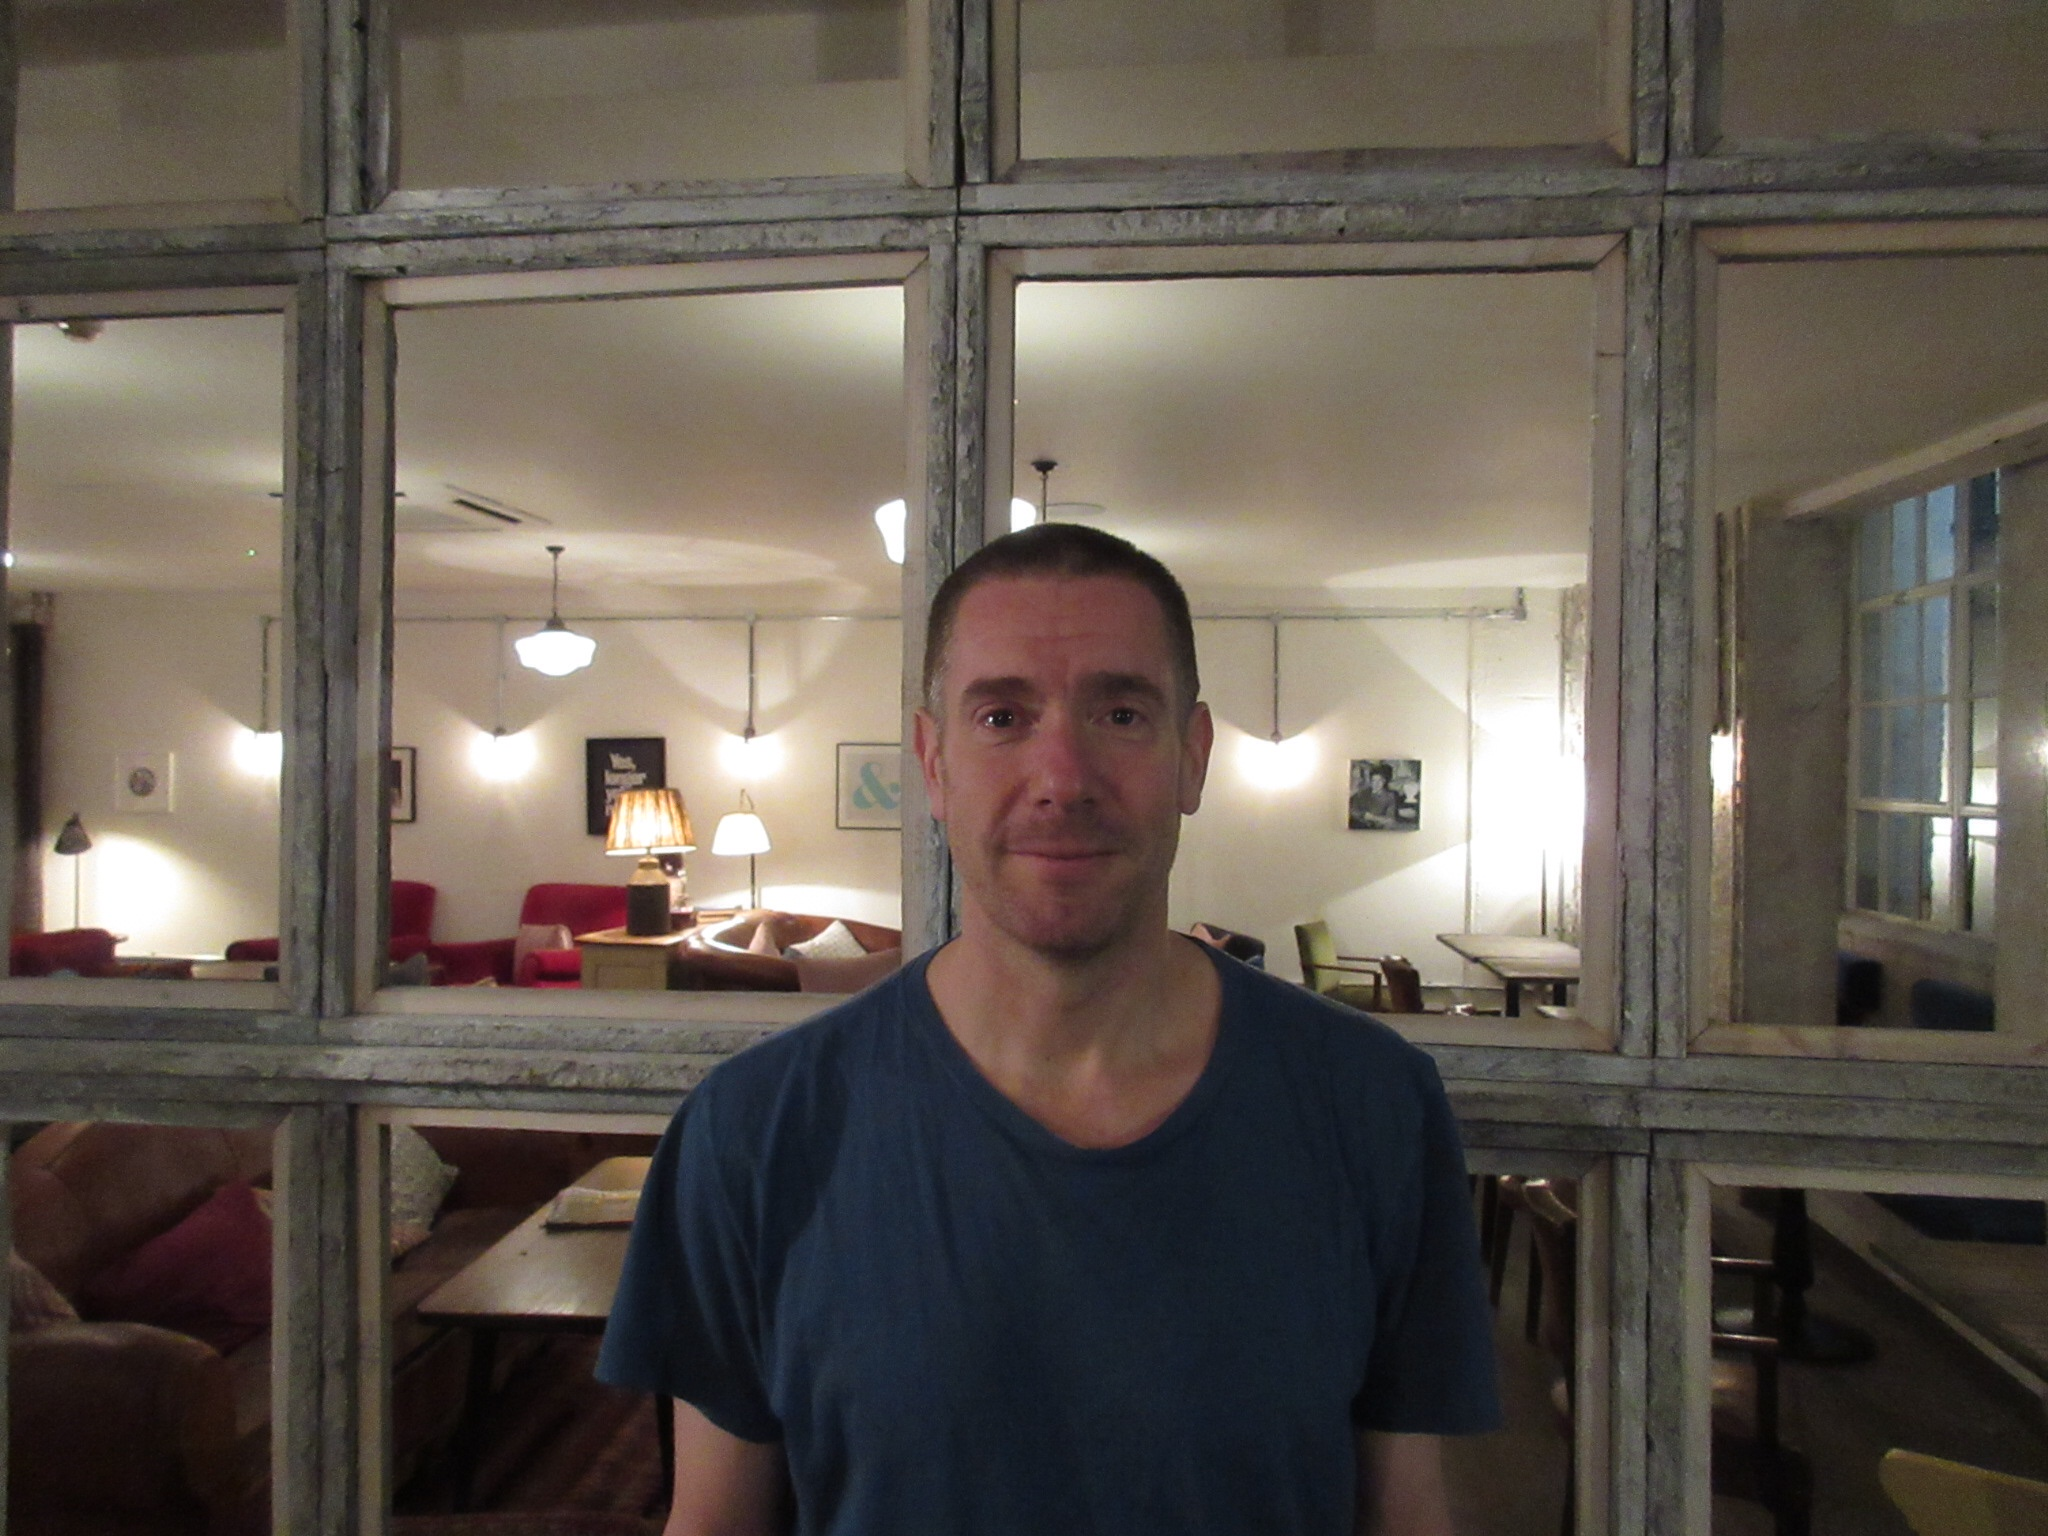 Matthew Benham Exclusive Interview: Lessons Learned and Signing For The Future